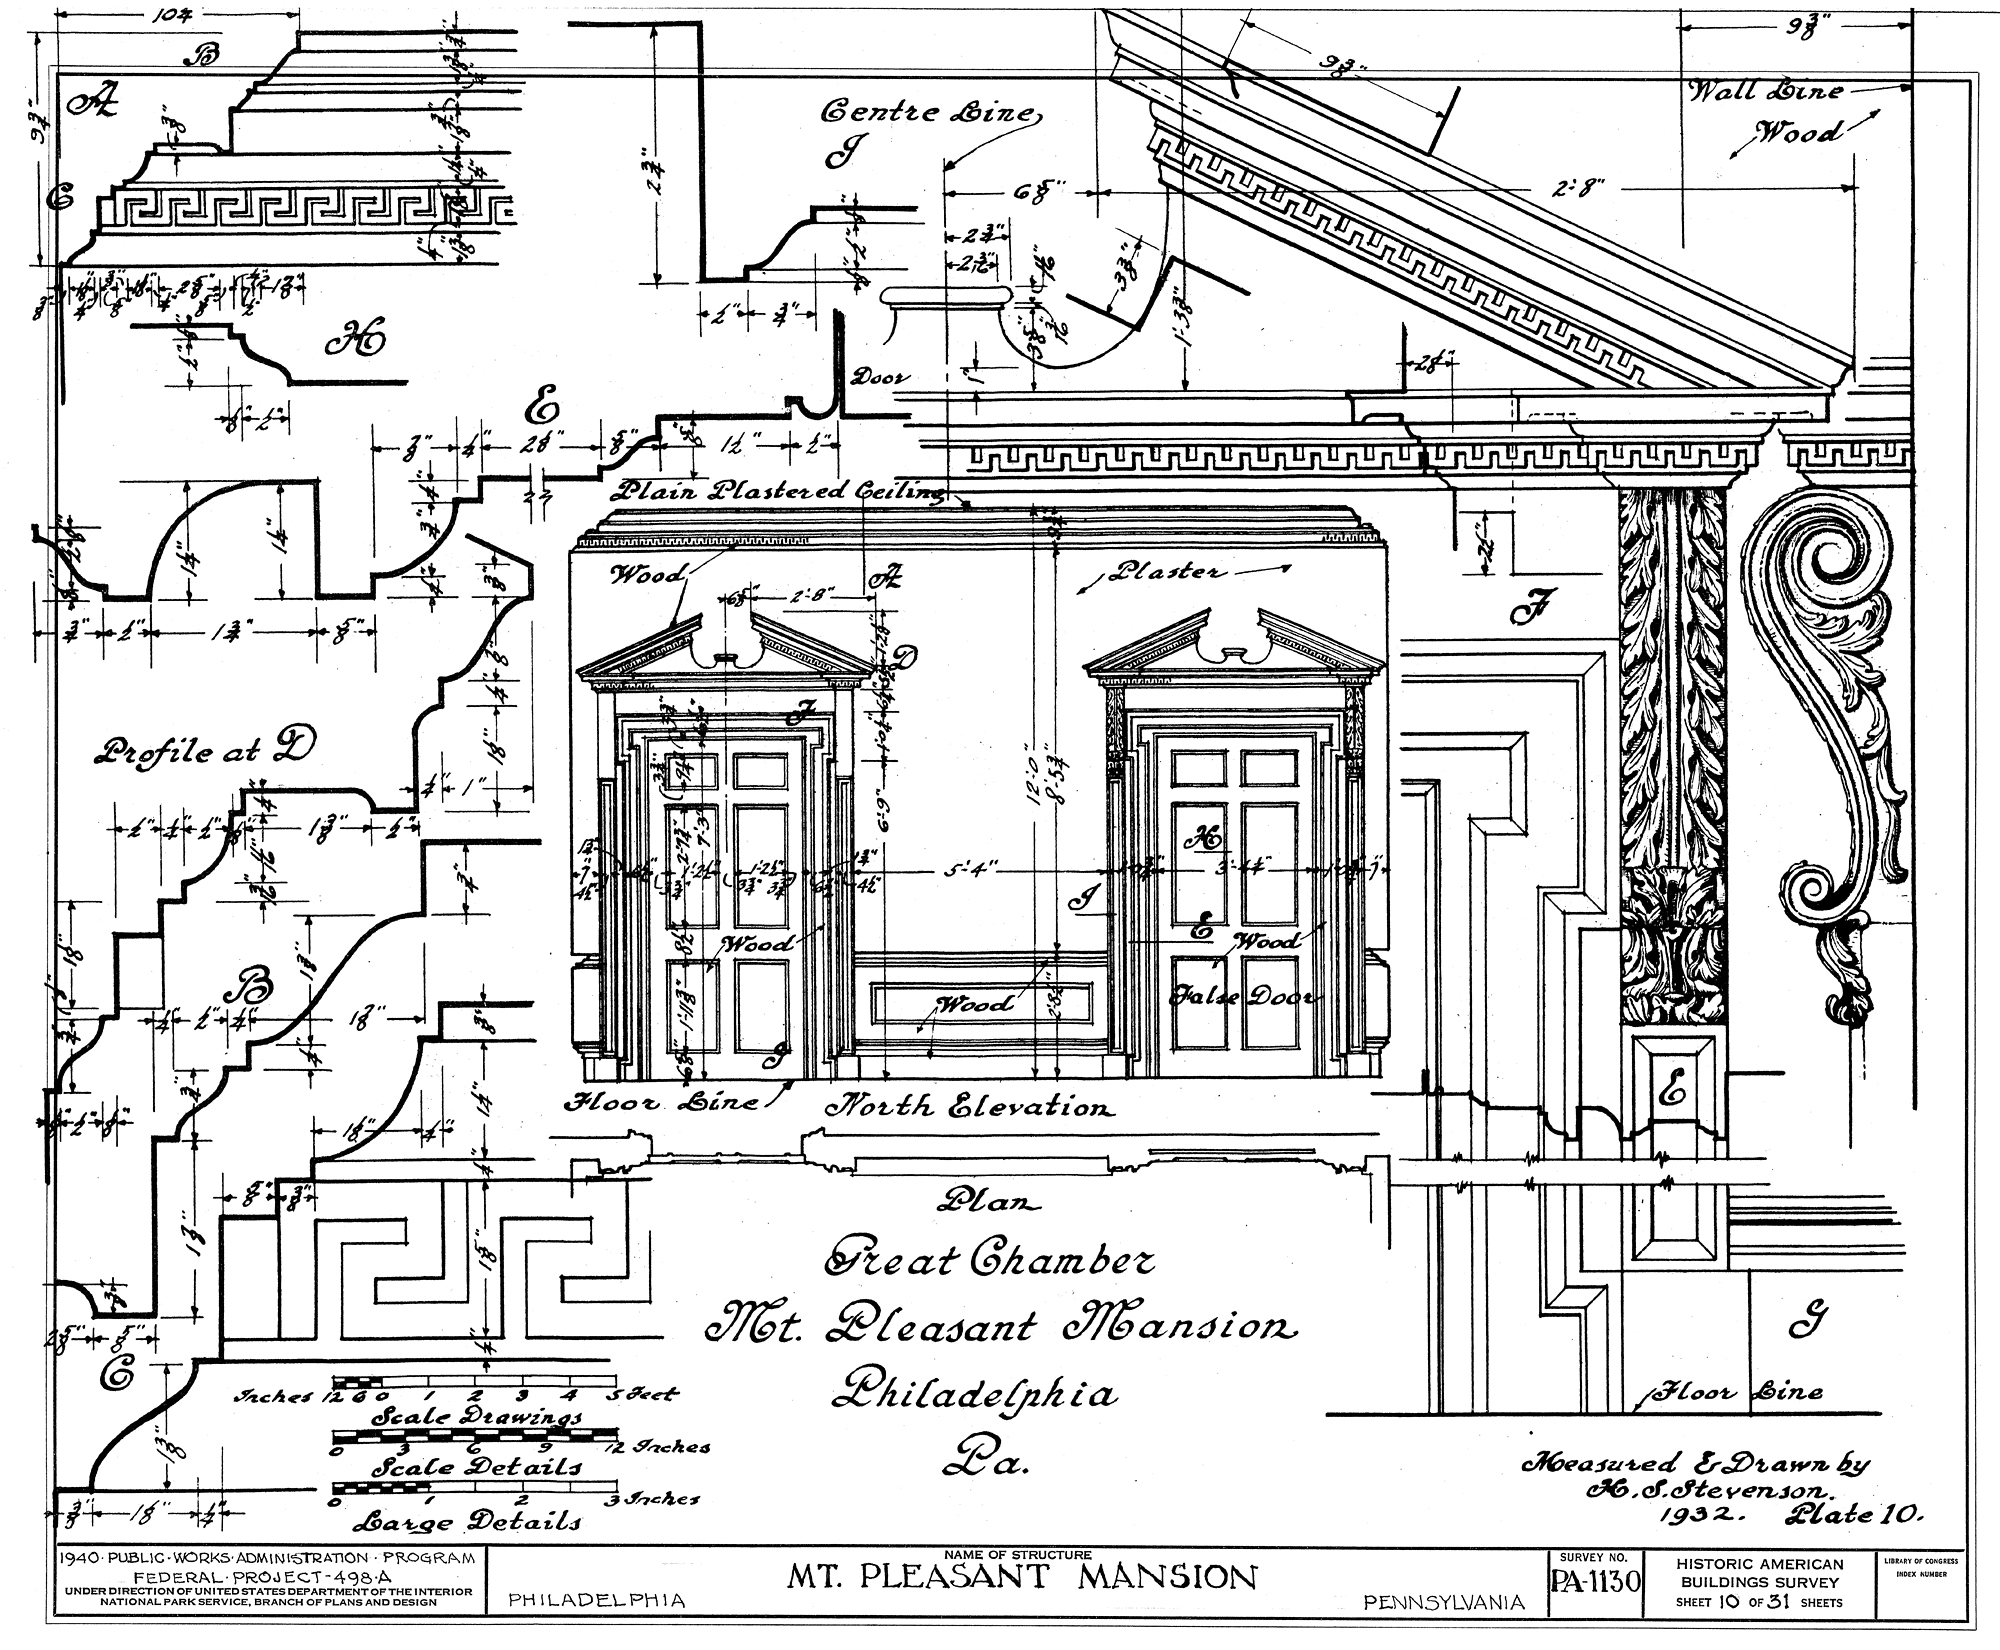 Drawn doorway The and in 1932 to